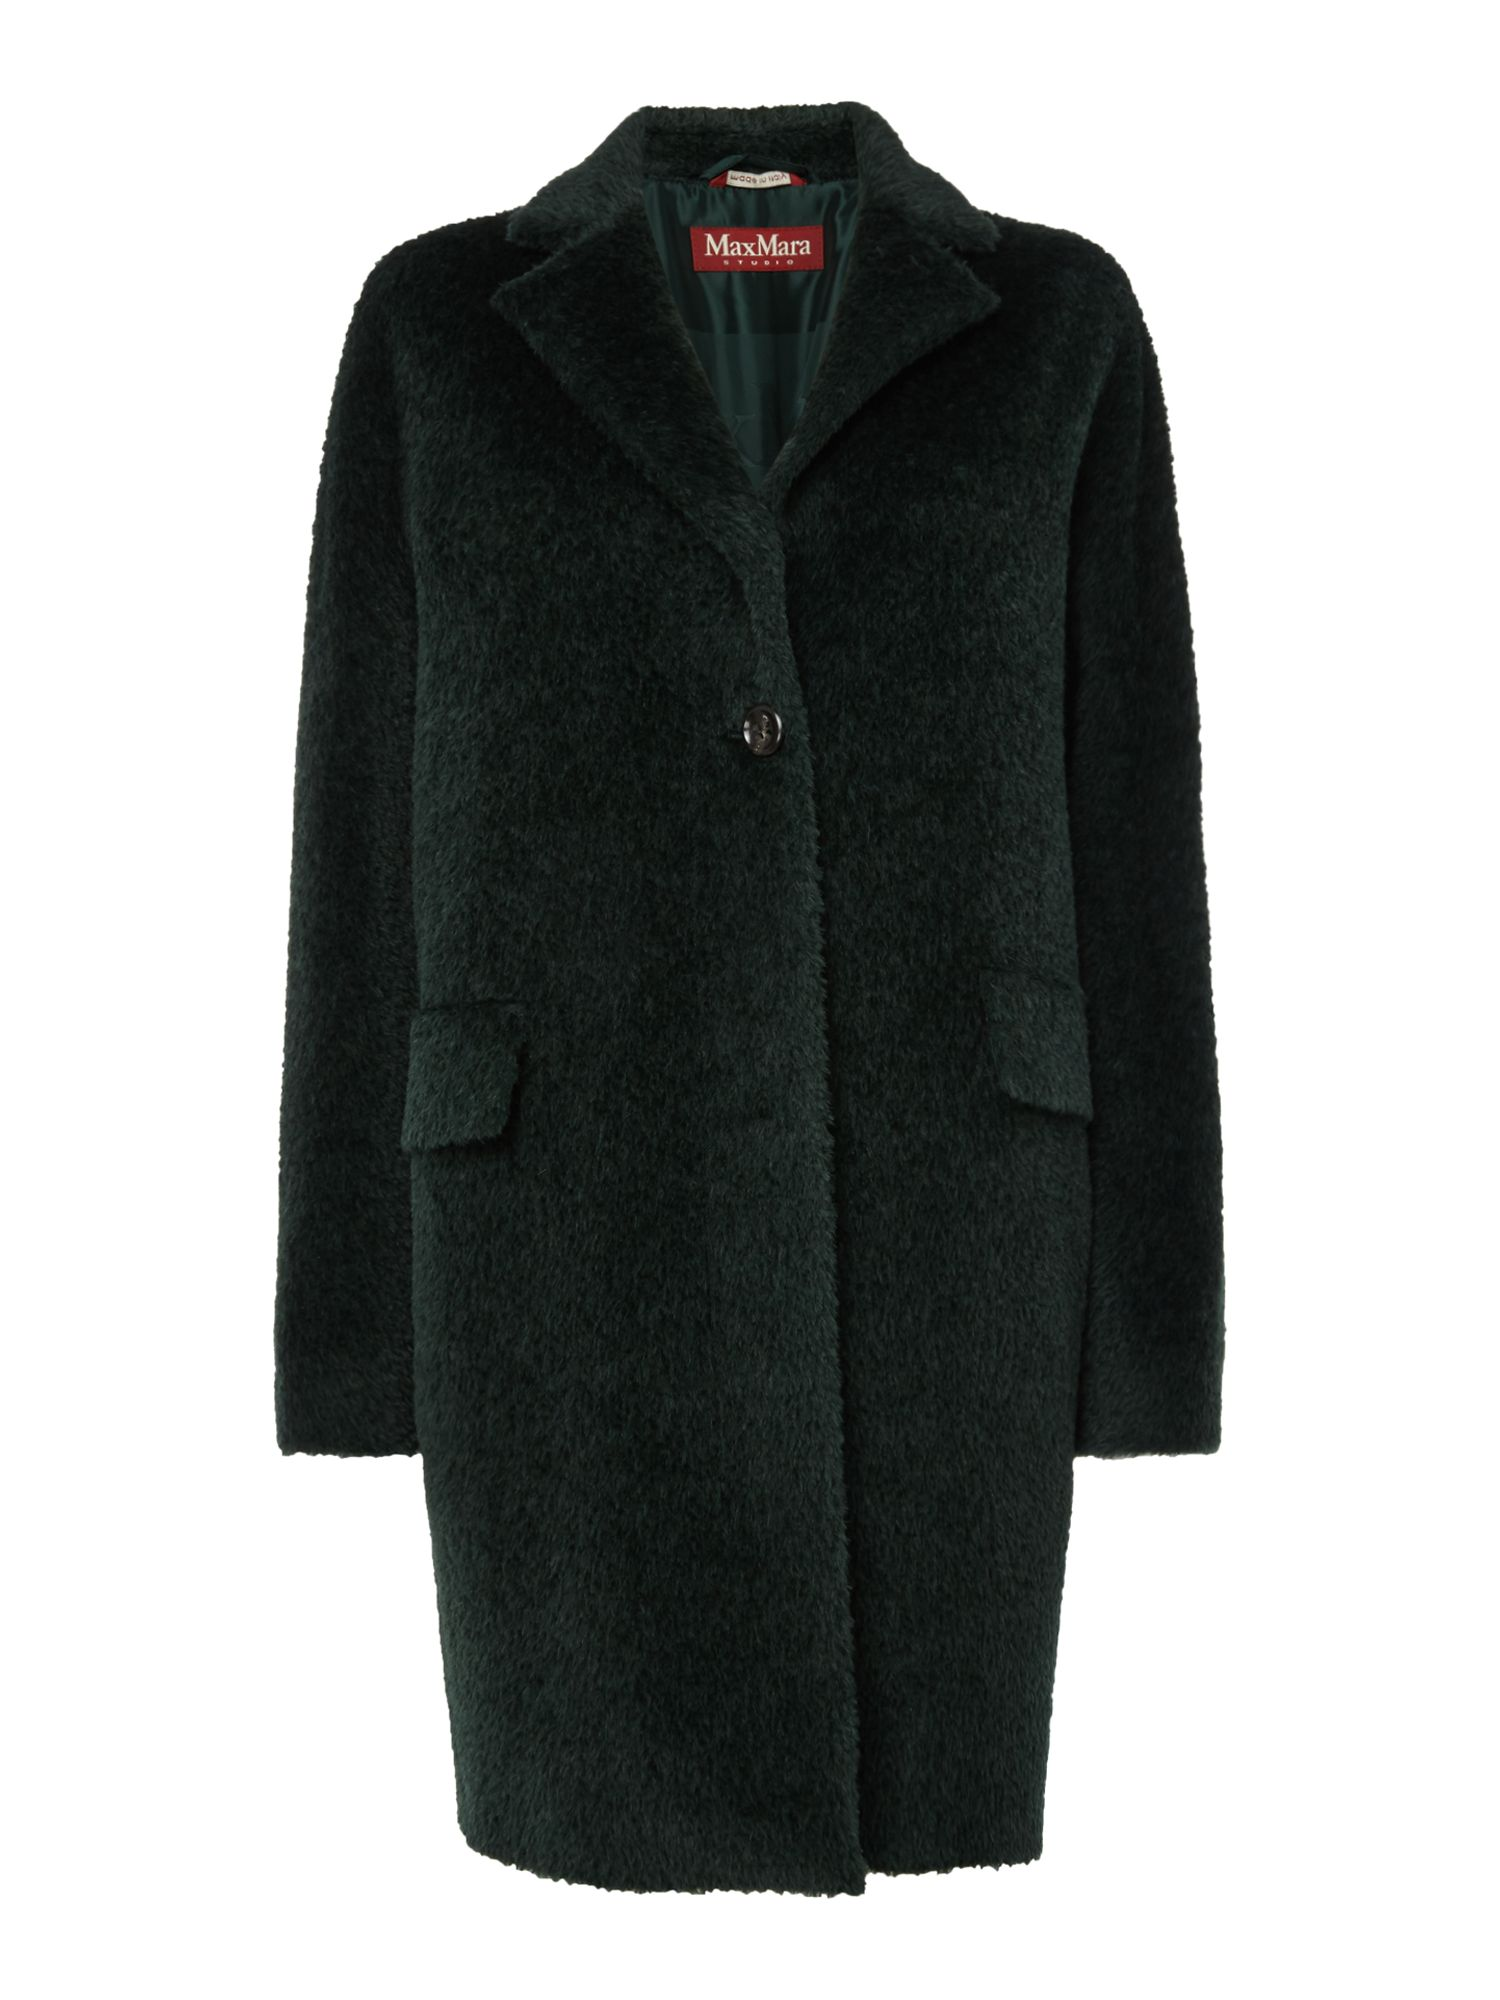 Max Mara Studio Camping alpaca wool coat, Dark Green